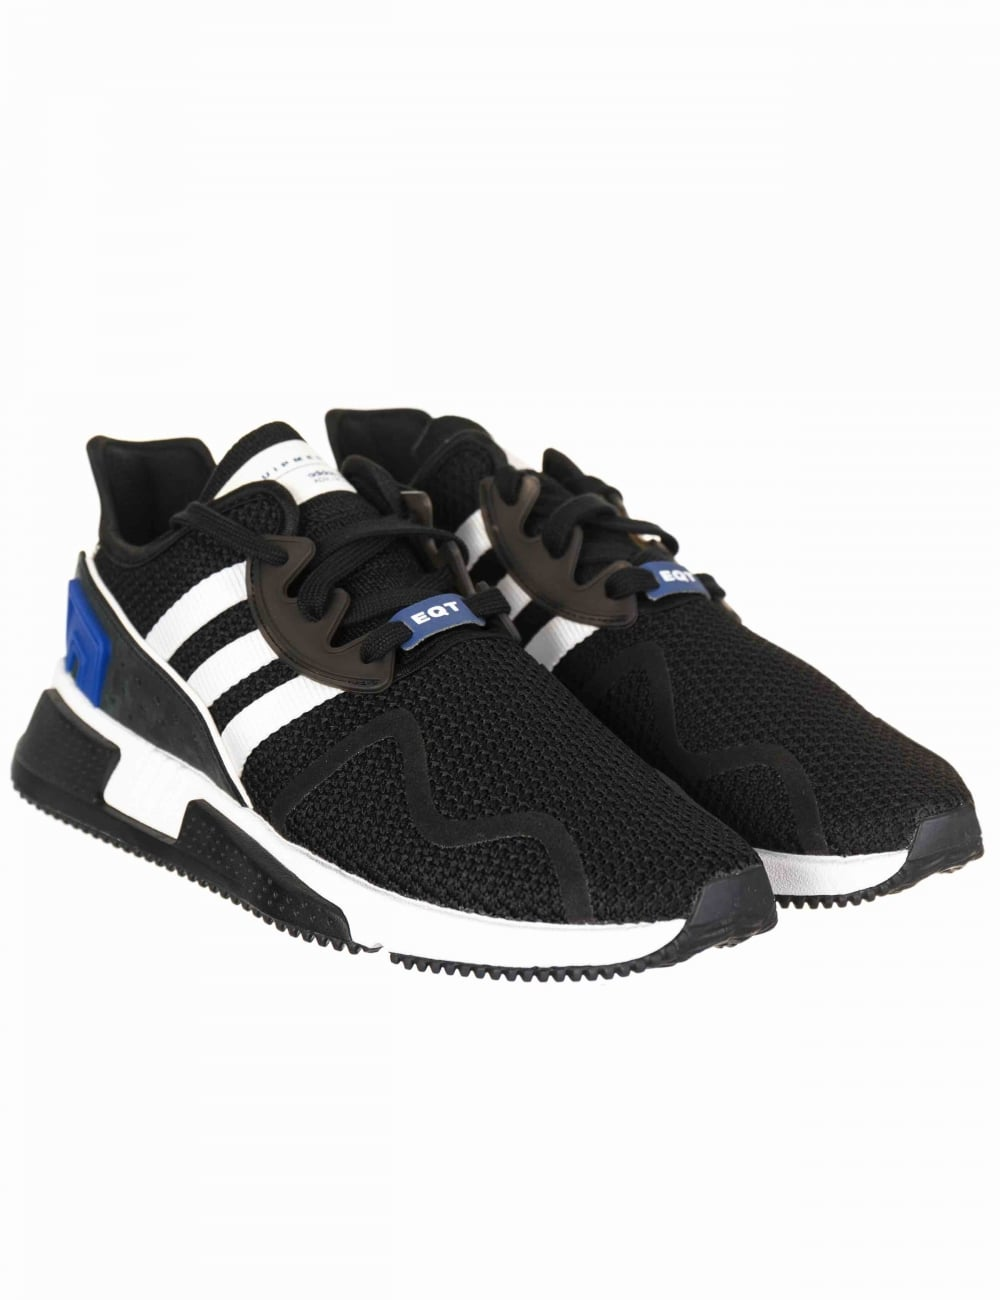 promo code ce0f3 44f32 EQT Cushion ADV - Black (Blue Pack)